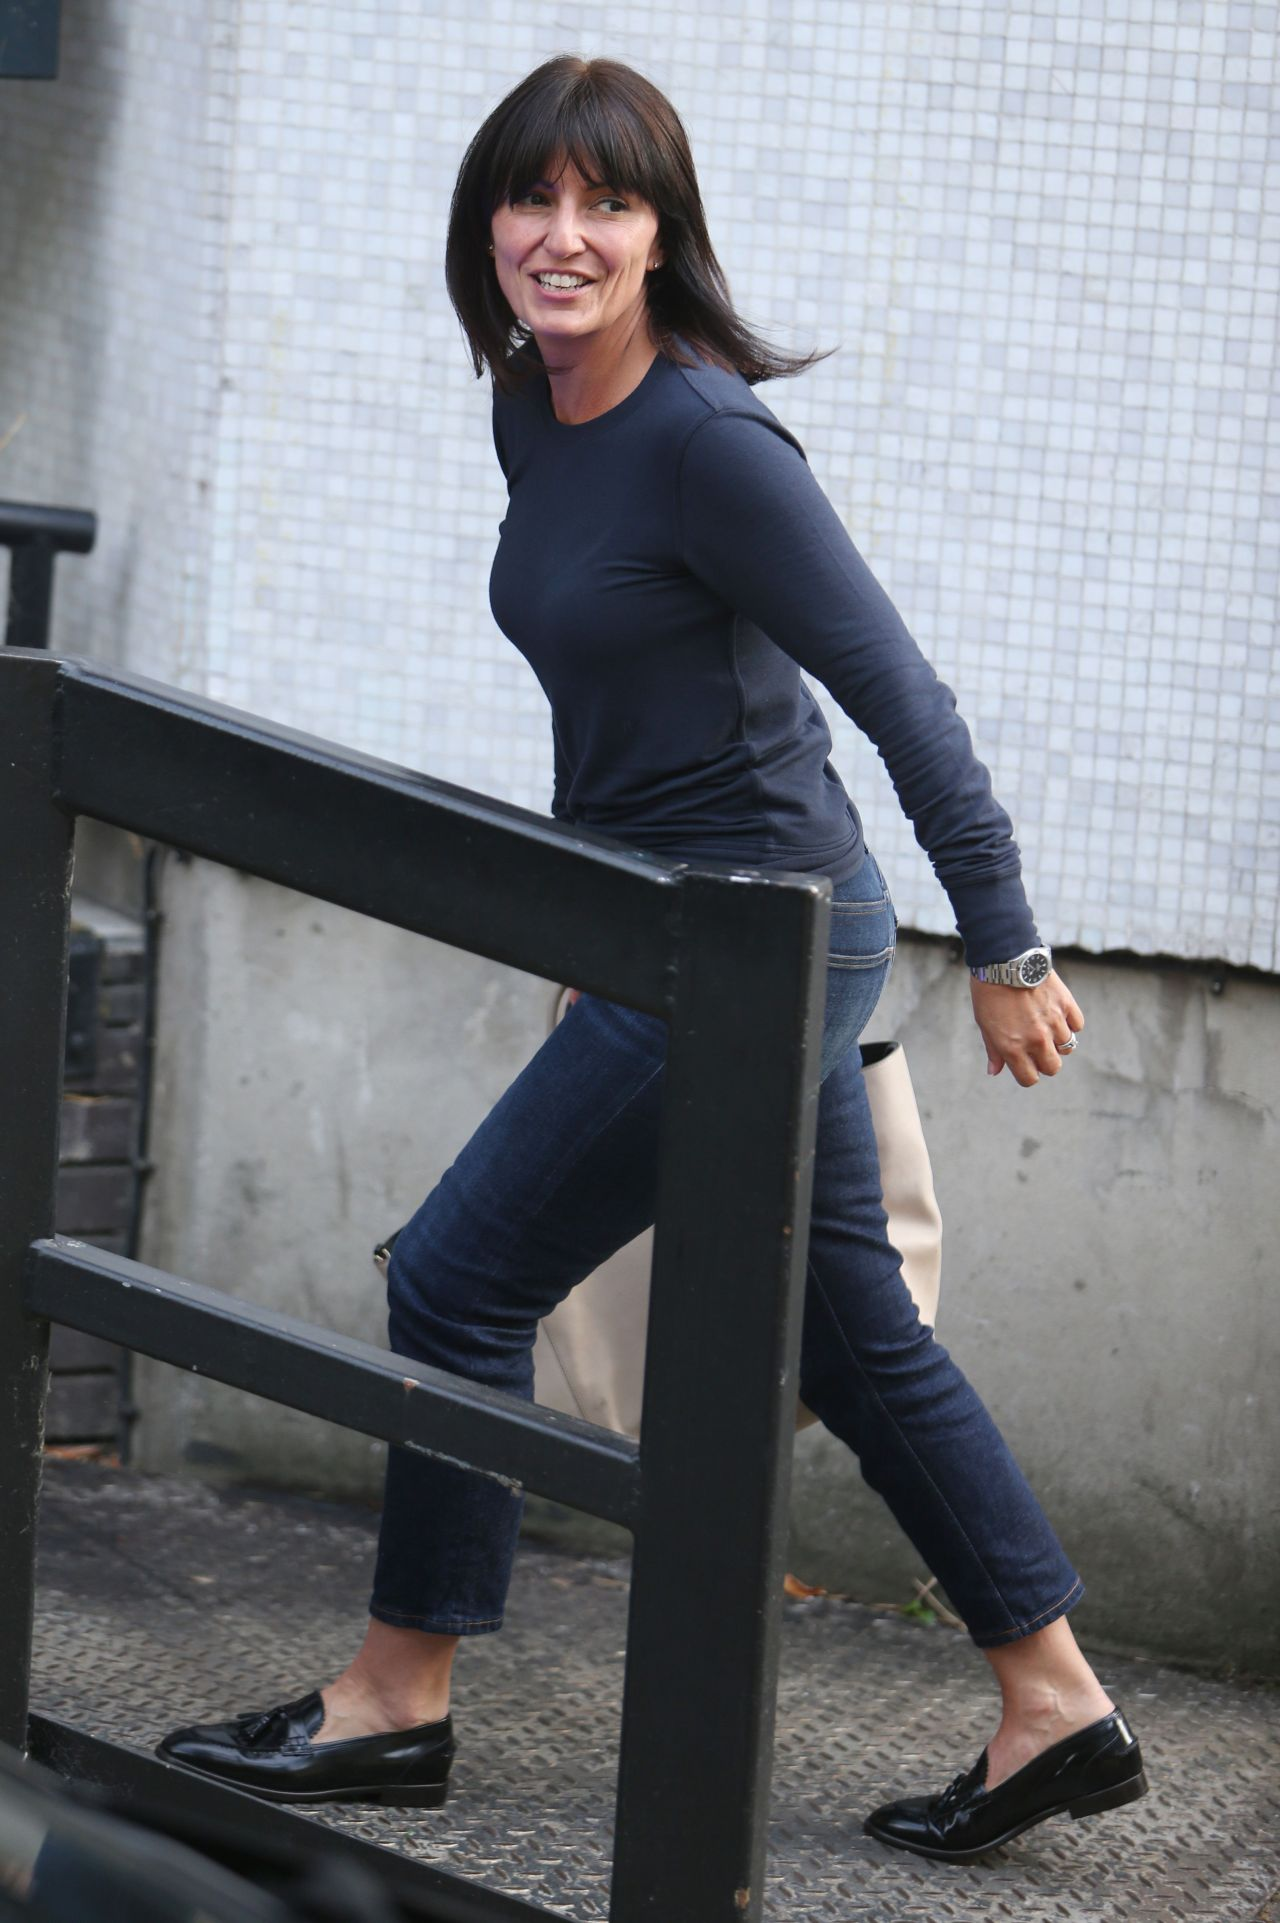 Pictures Of Davina Mccall 69